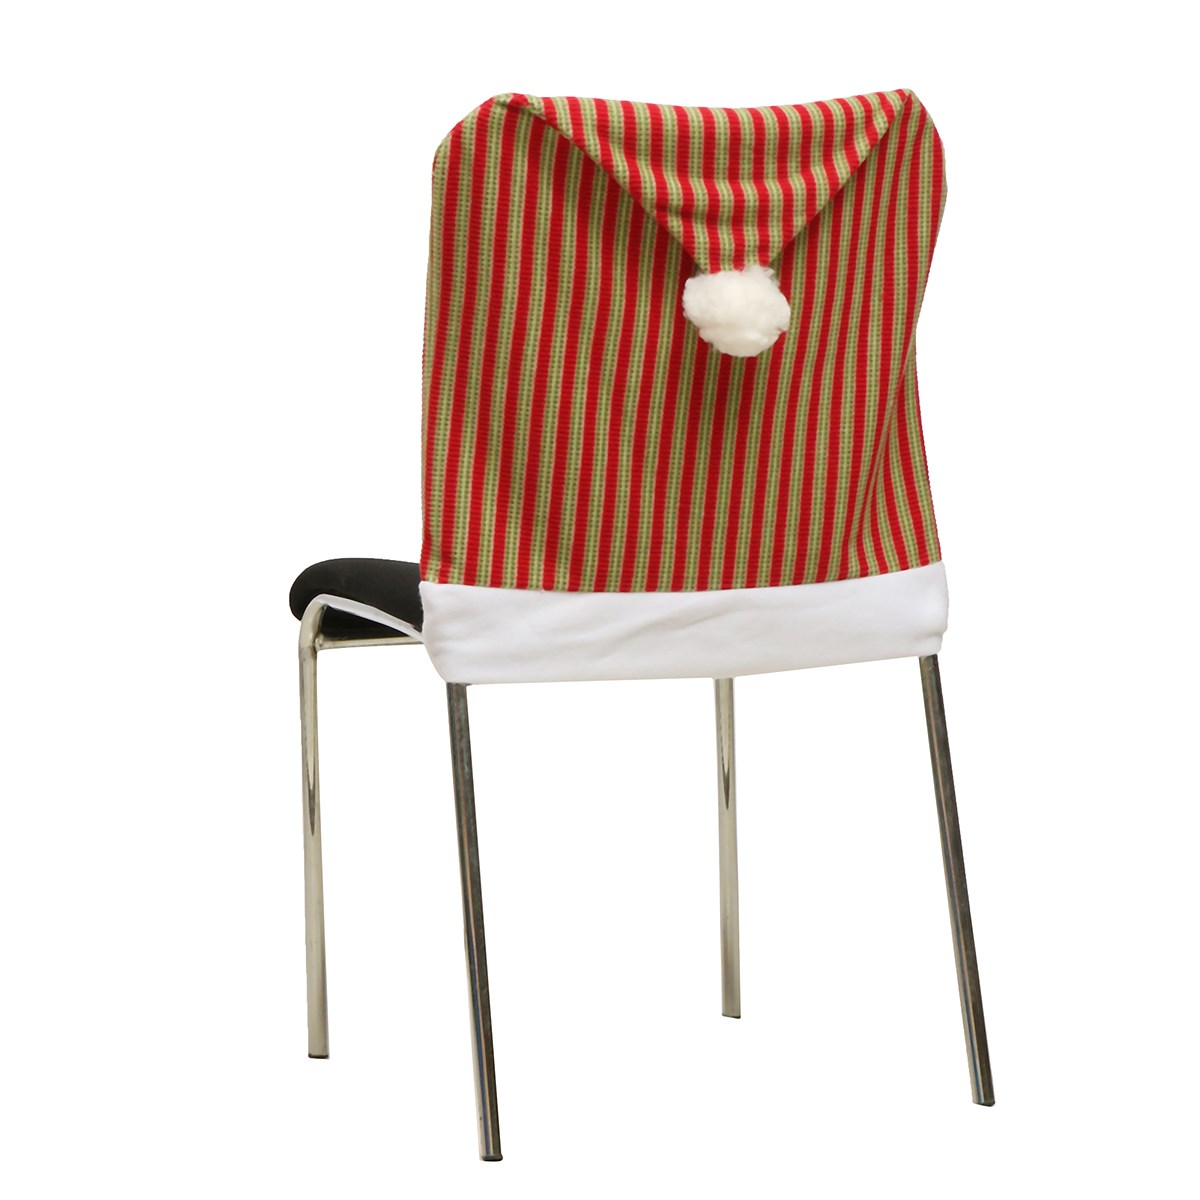 50X70cm Christmas Chair Covers Vertical Stripes Lovely Decoration Dining Room Cover Home Party Decor